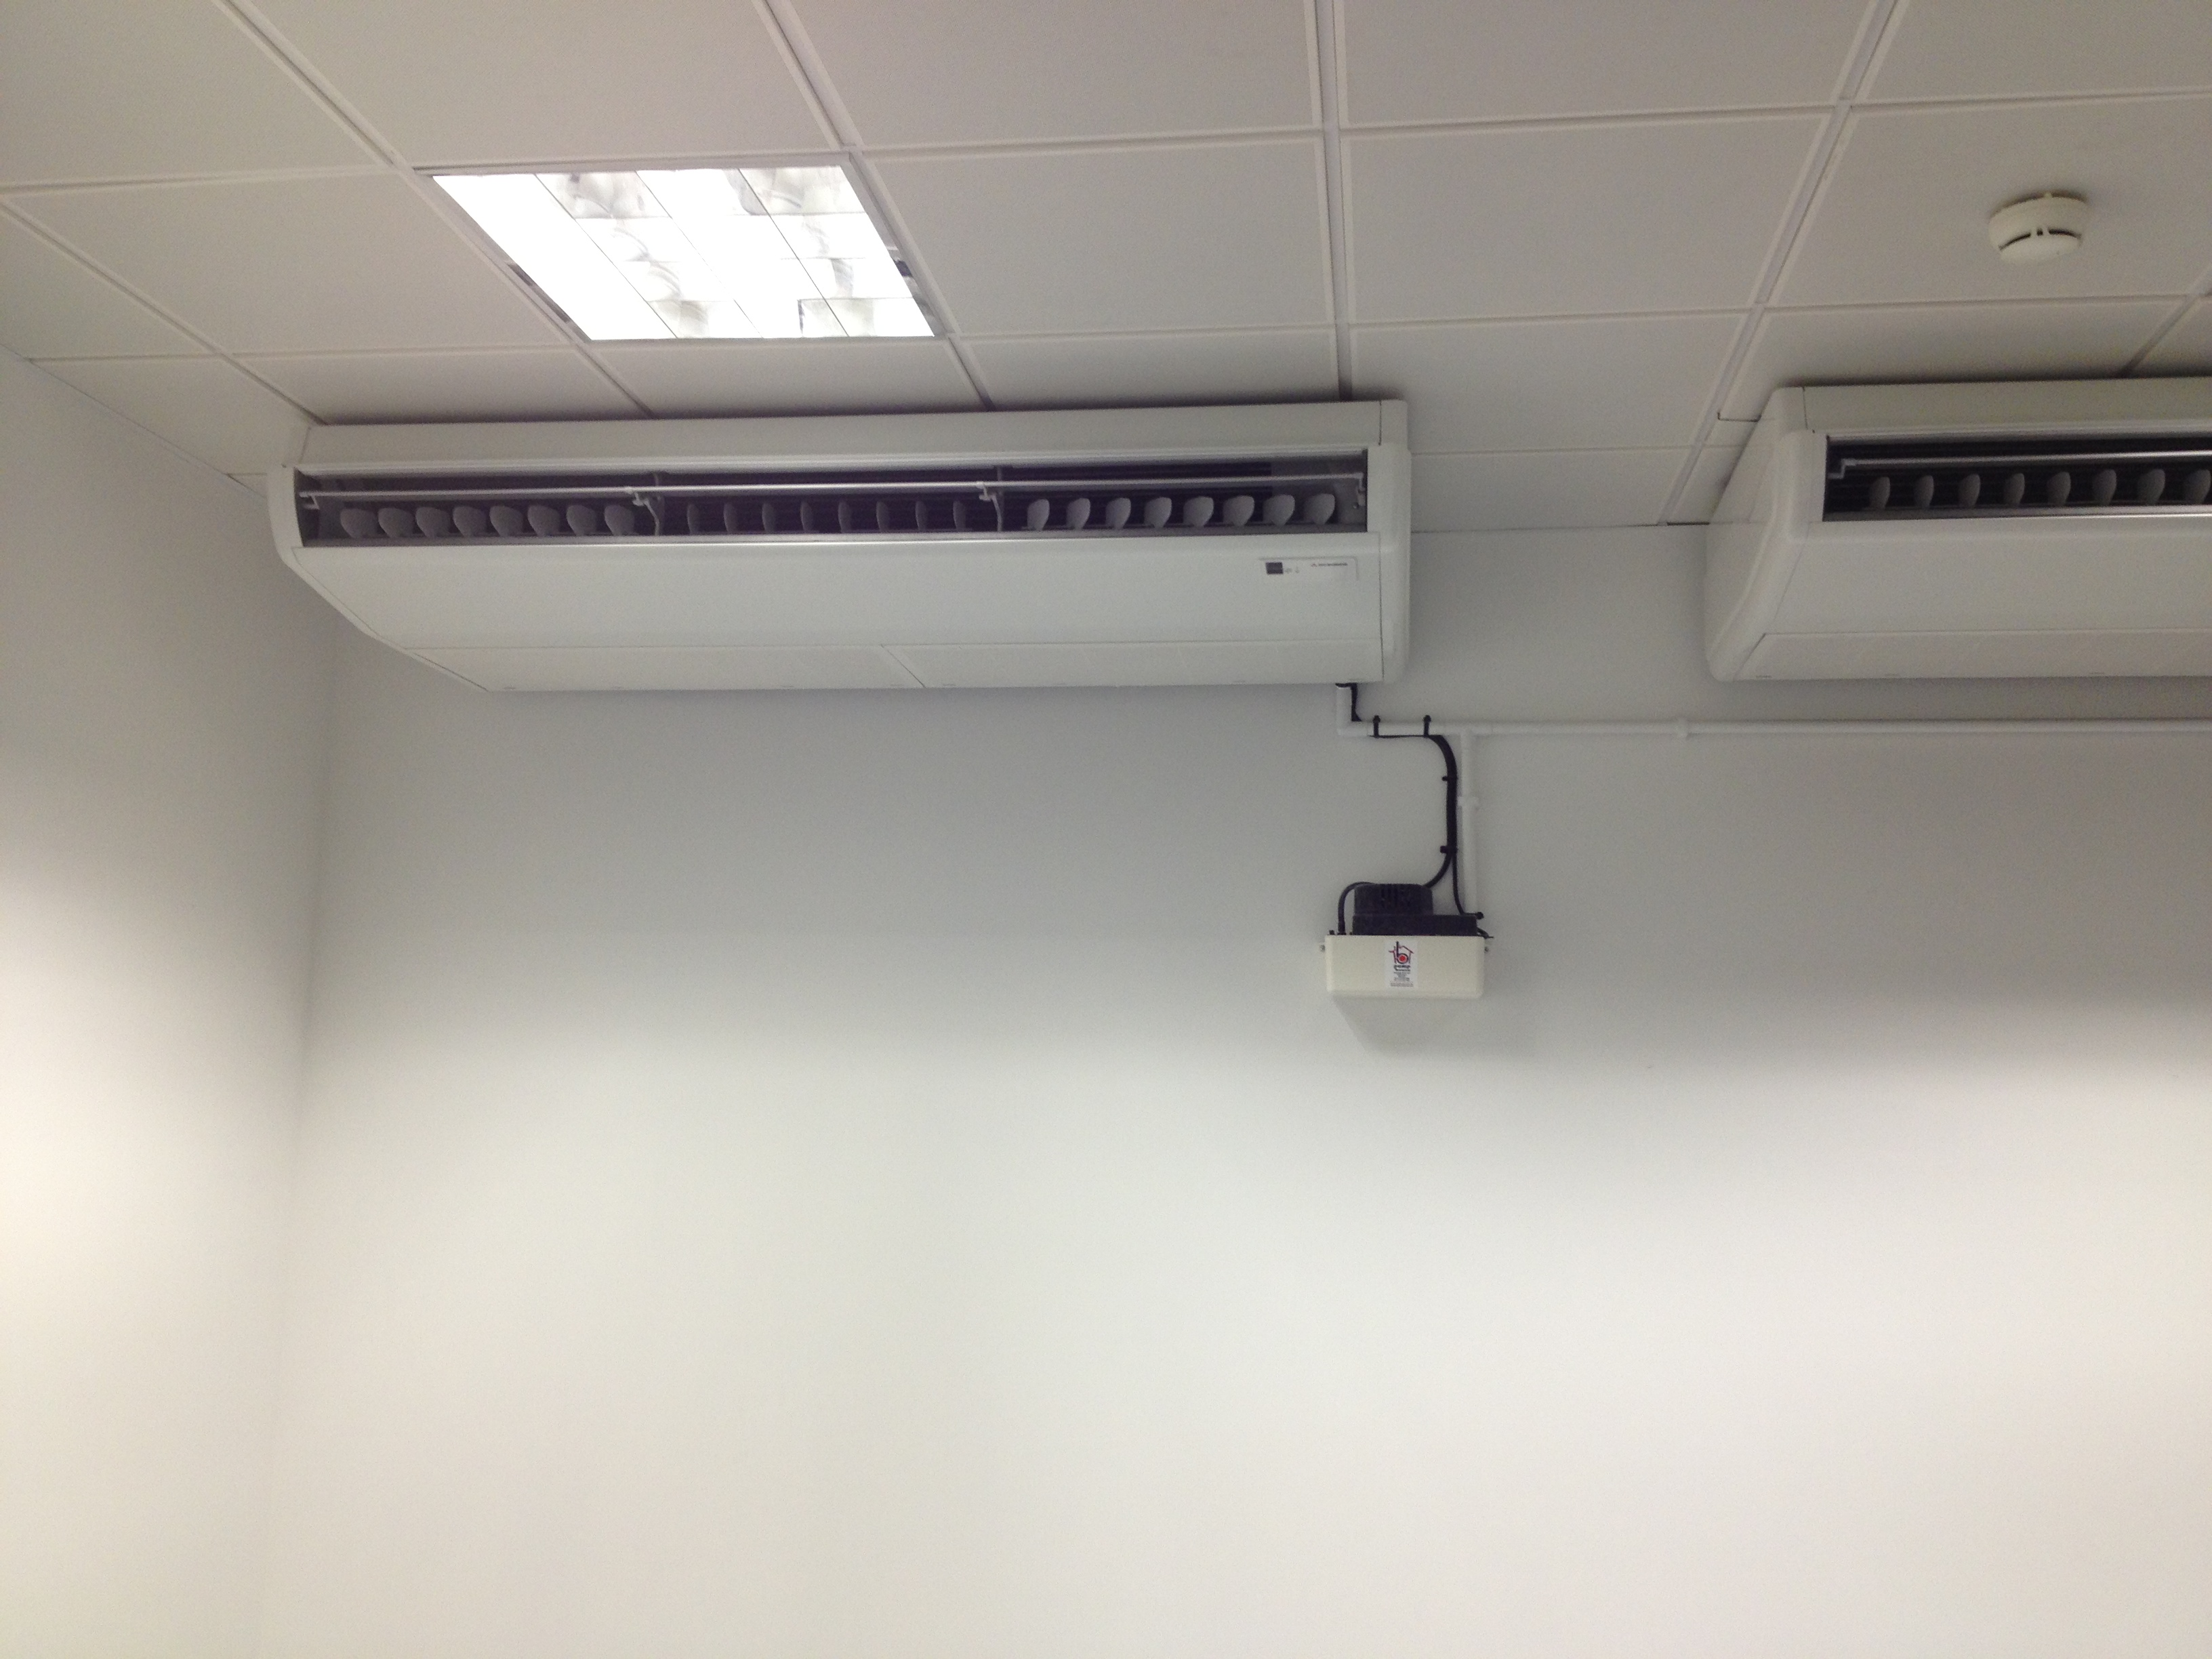 MHI Indoor units in the server room